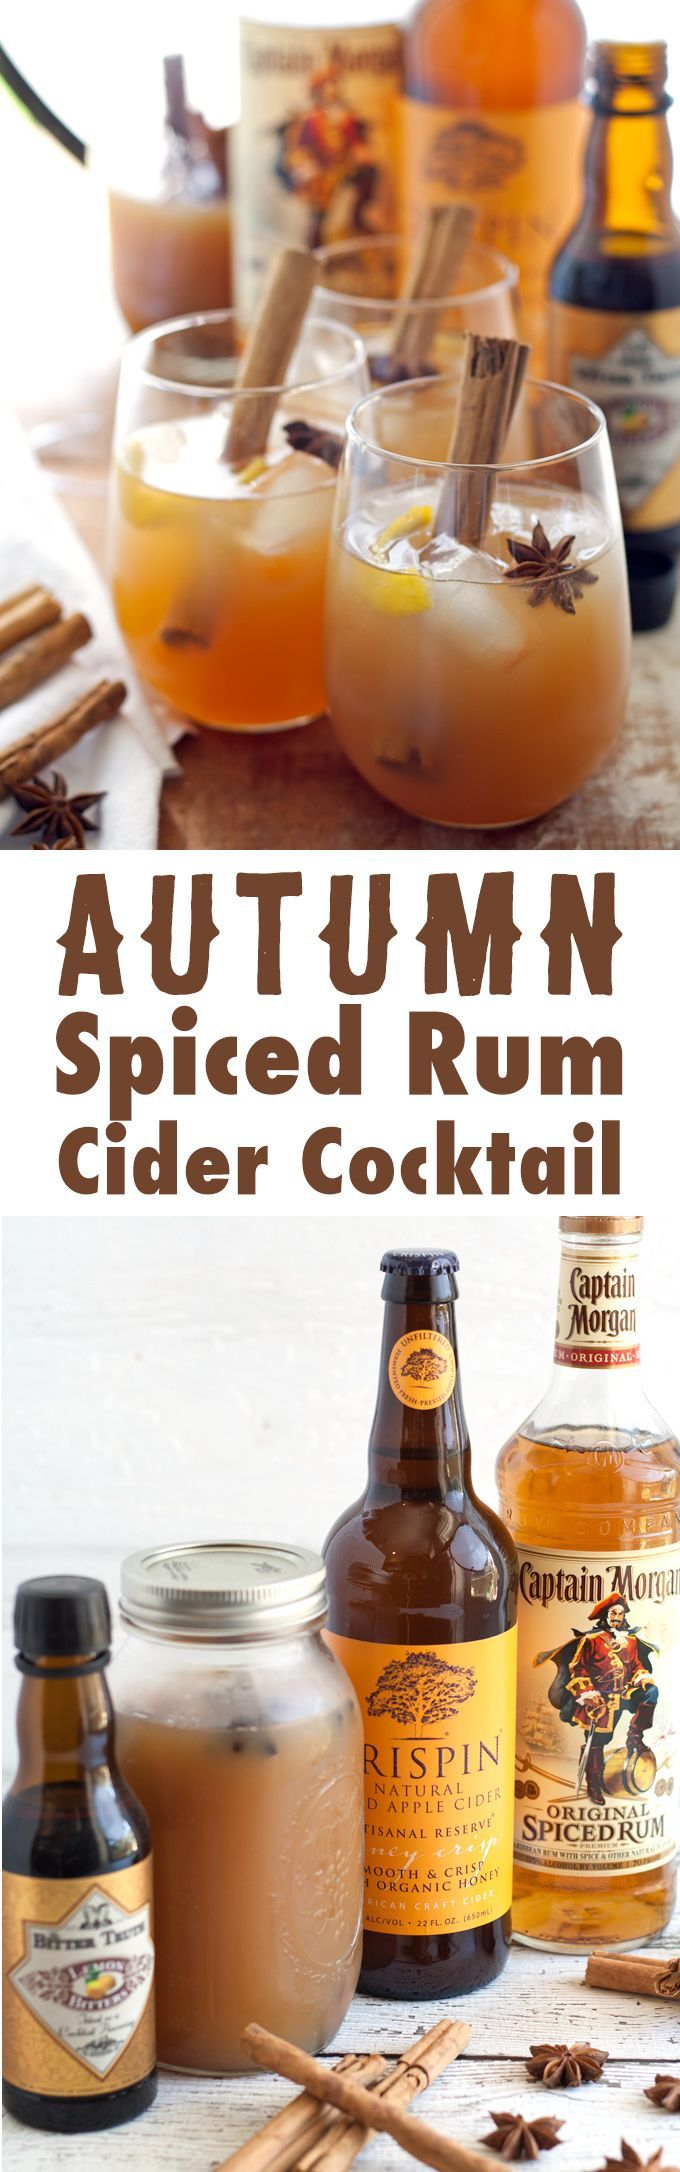 Autumn Spiced Rum Cider Cocktail - the perfect autumn cocktail! | http://honeyandbirch.com